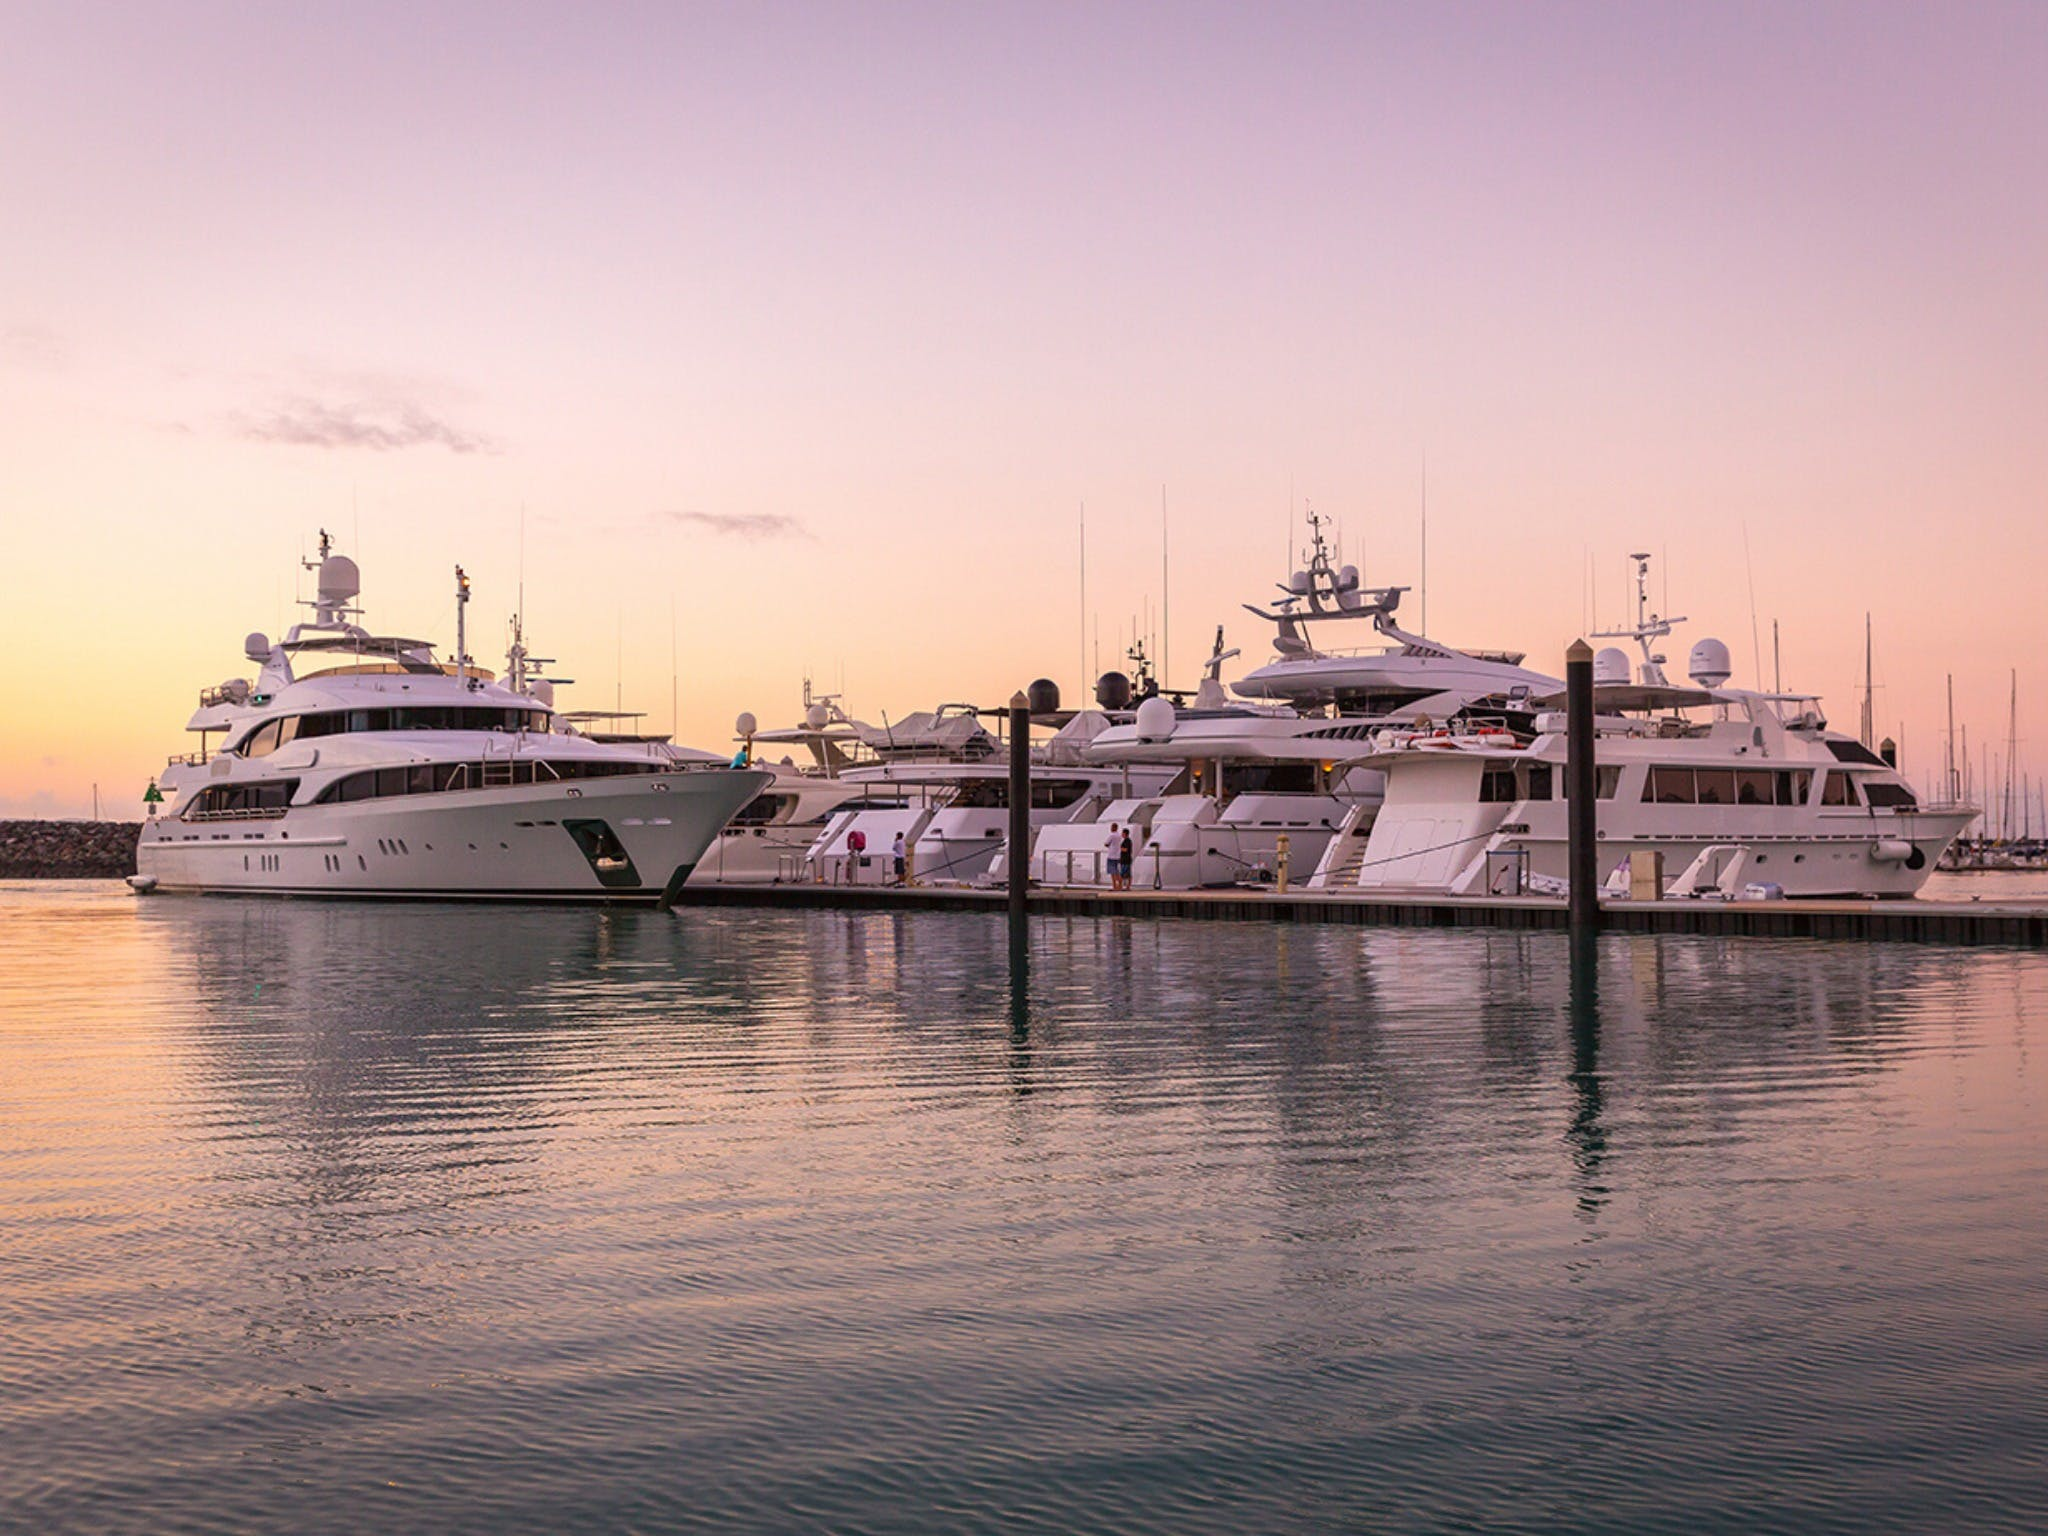 Australian Superyacht Rendezvous - Great Barrier Reef edition - QLD Tourism